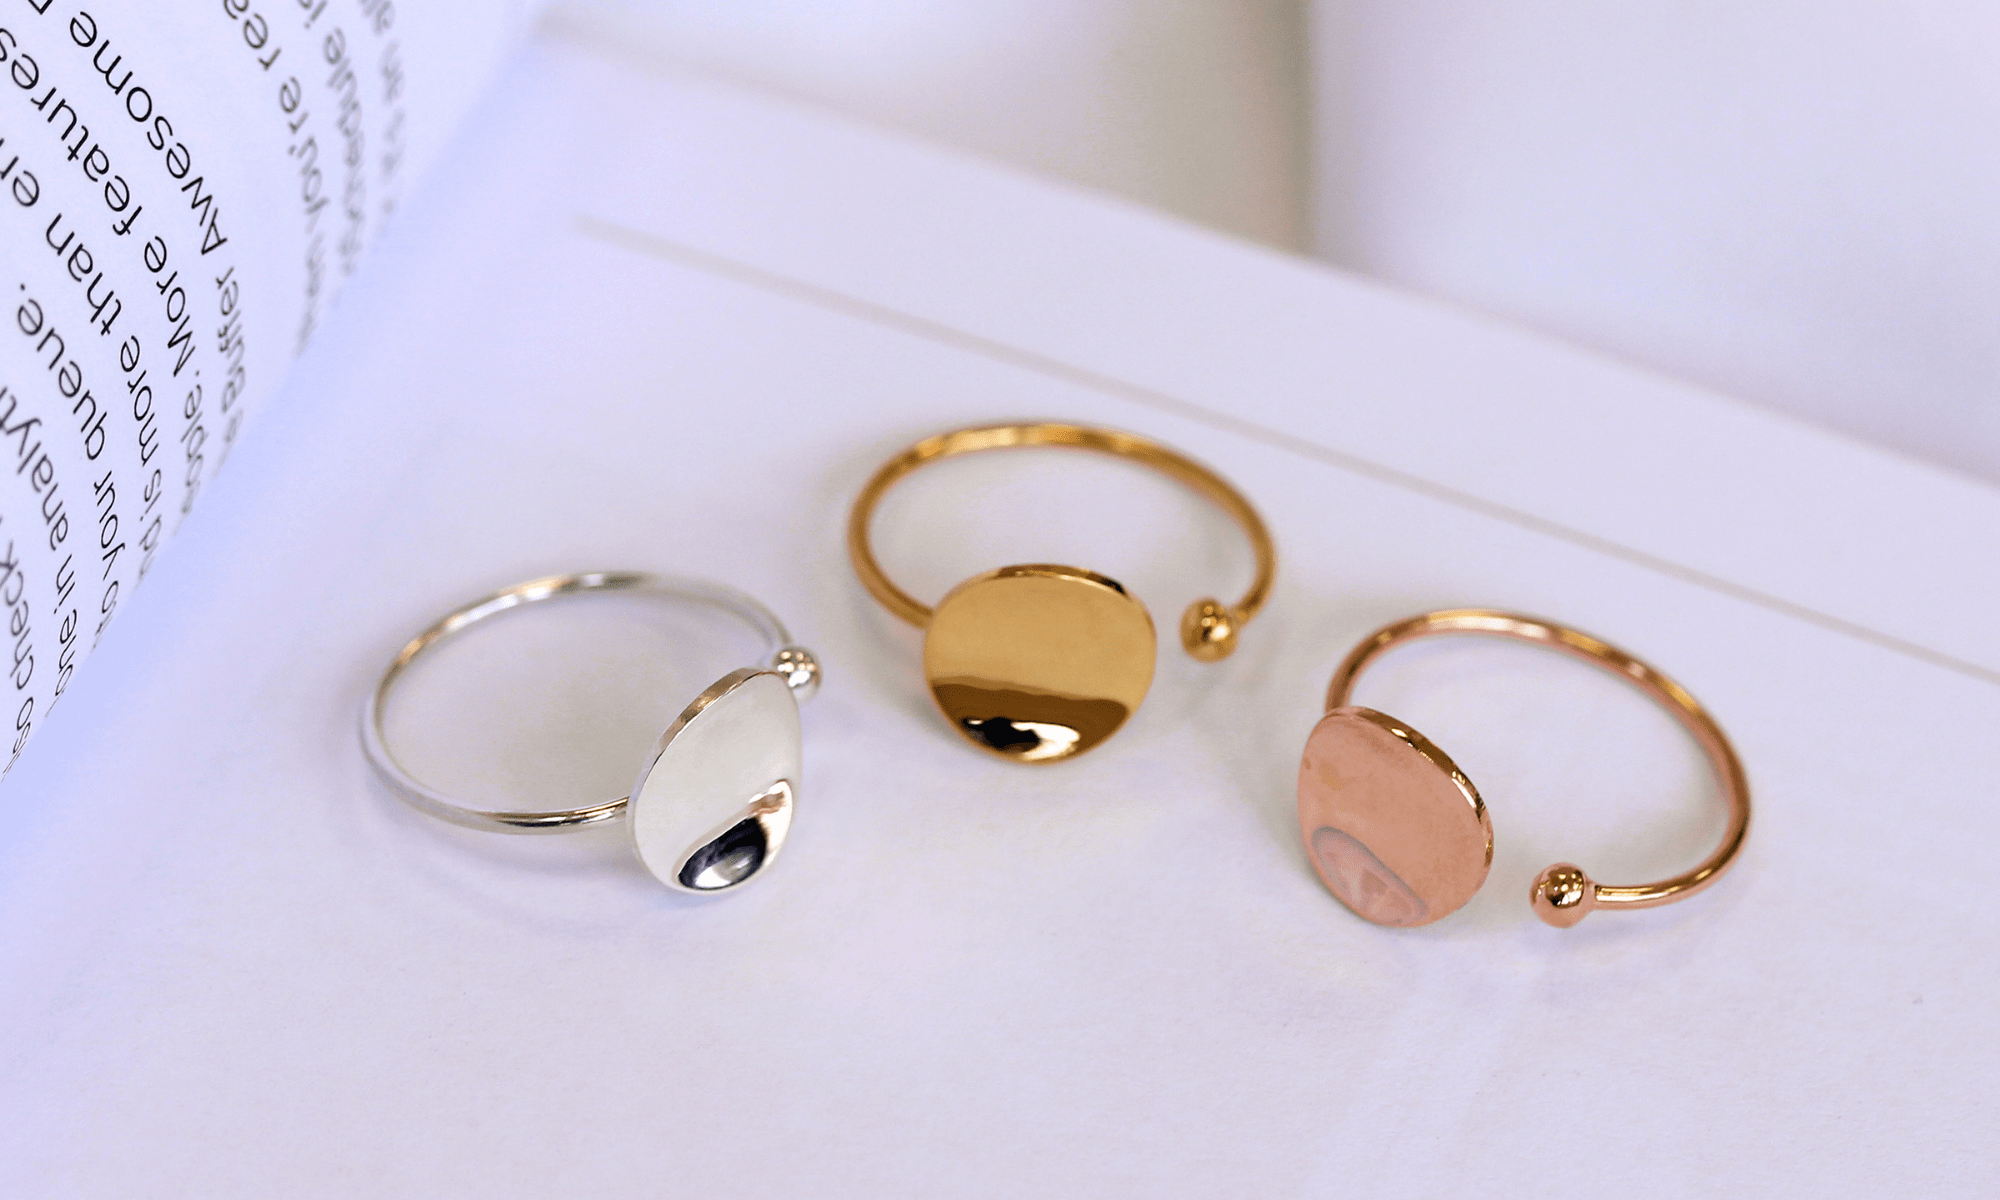 An image showing the stacking rings